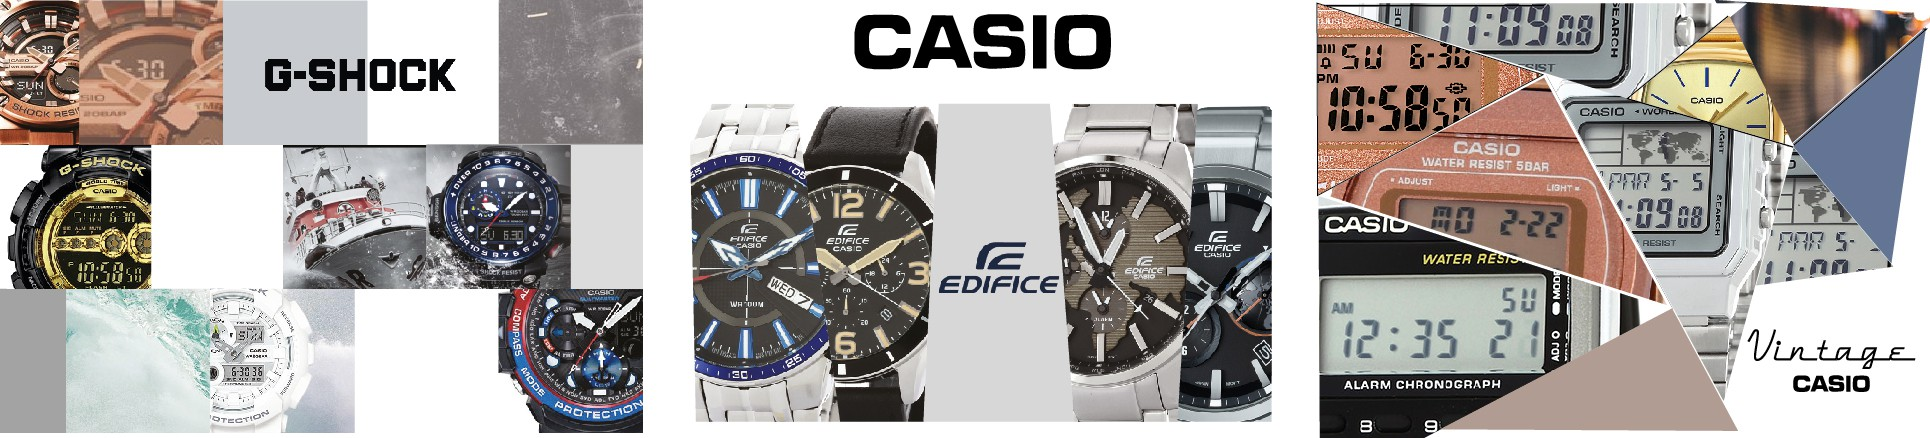 Casio Montres Collections Vintage Edifice G-Shock